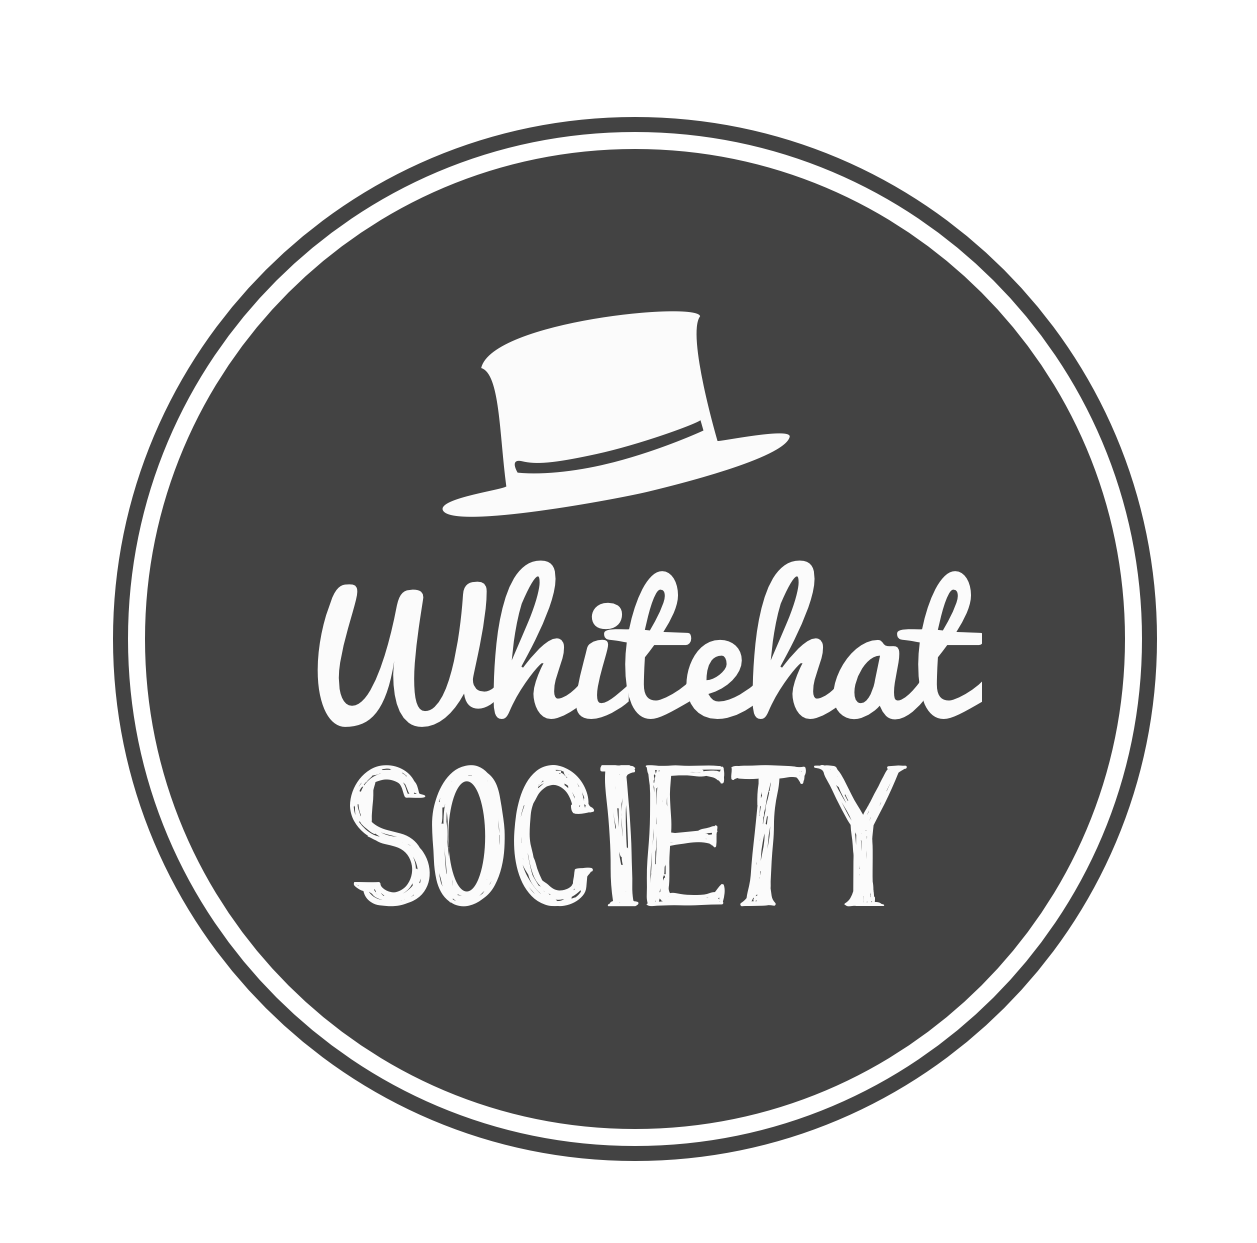 SMU Whitehats Society